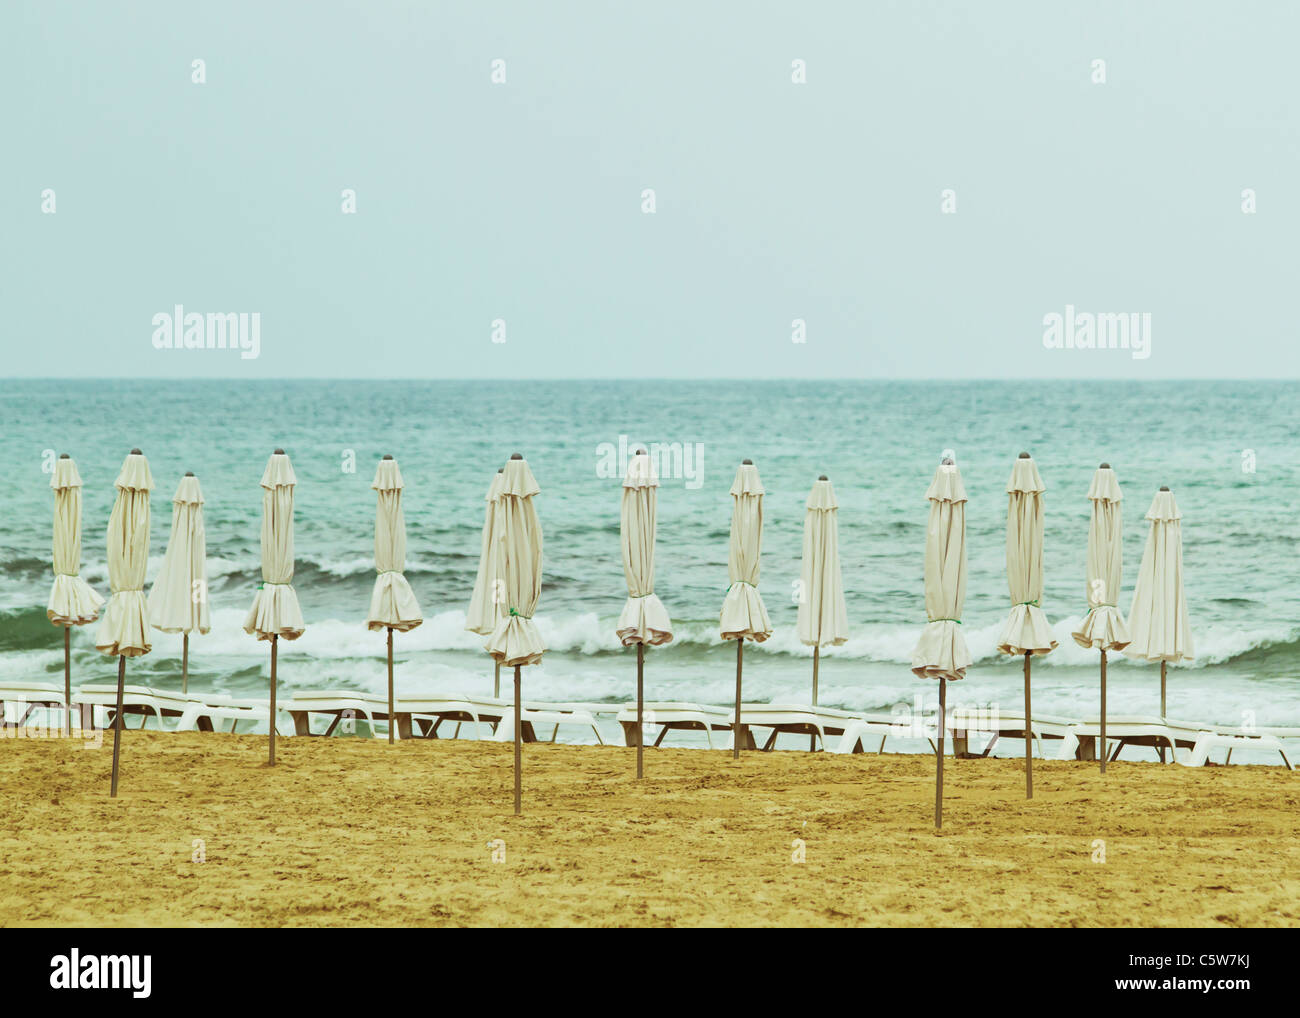 Spain, Alicante, View of empty beach with tied beach umbrellas and sun loungers - Stock Image